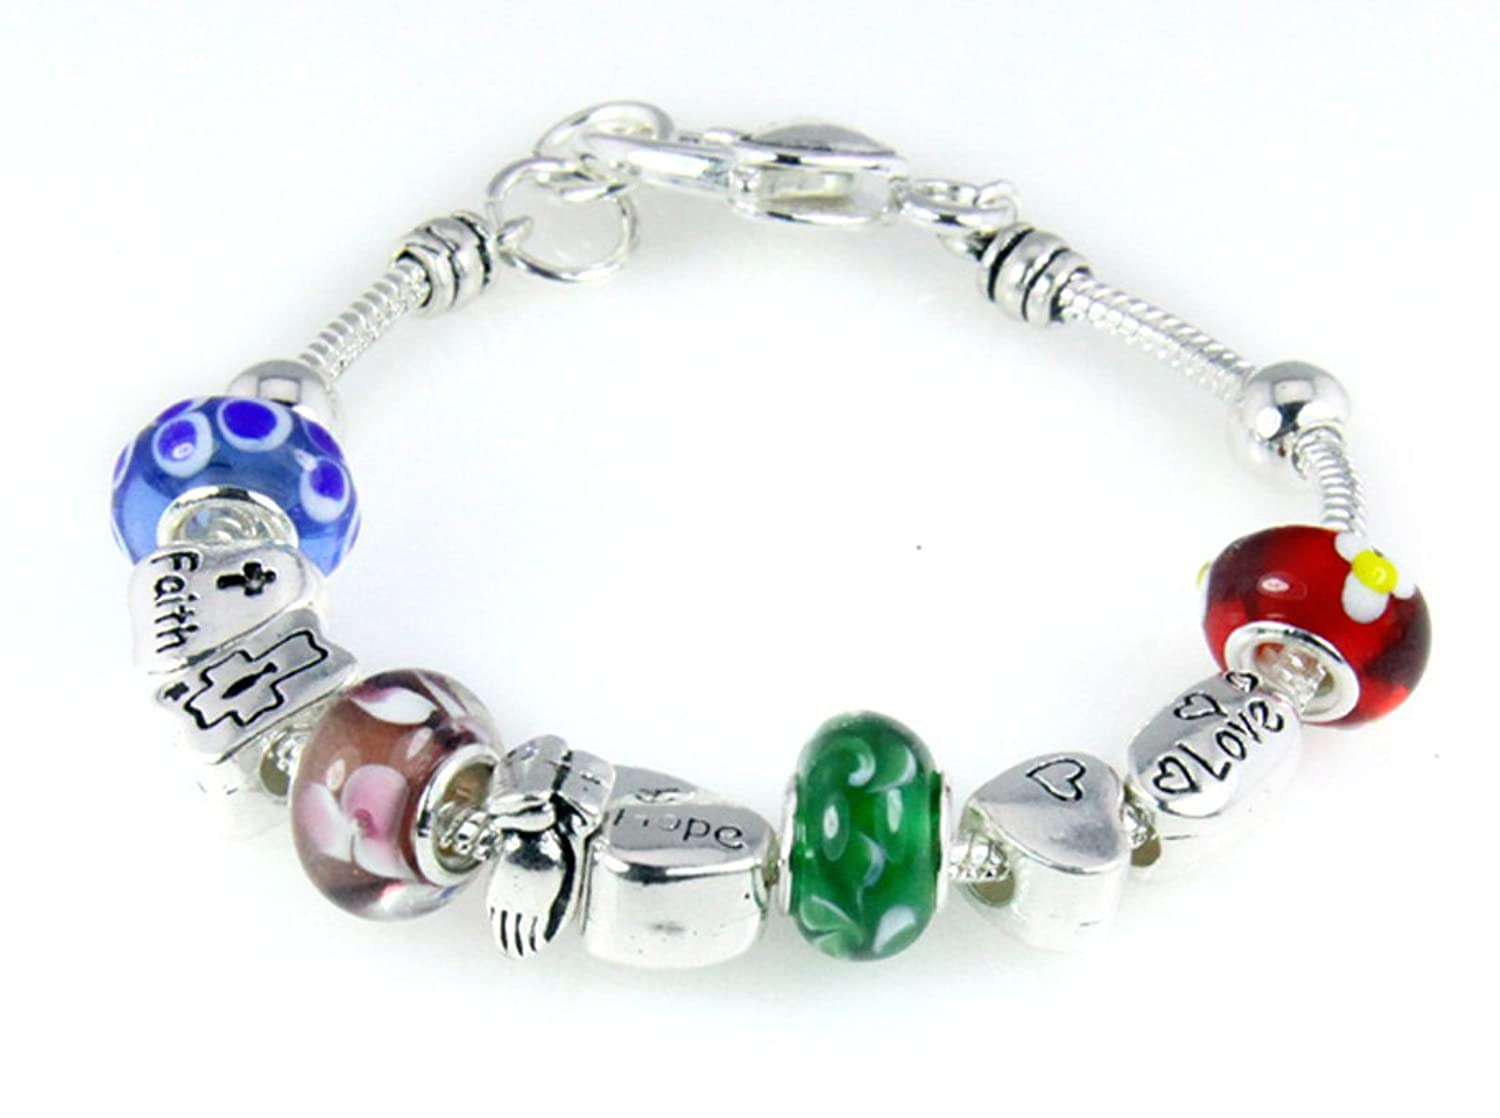 bead bracelet alphabet weekend beads hello greeting pin glass